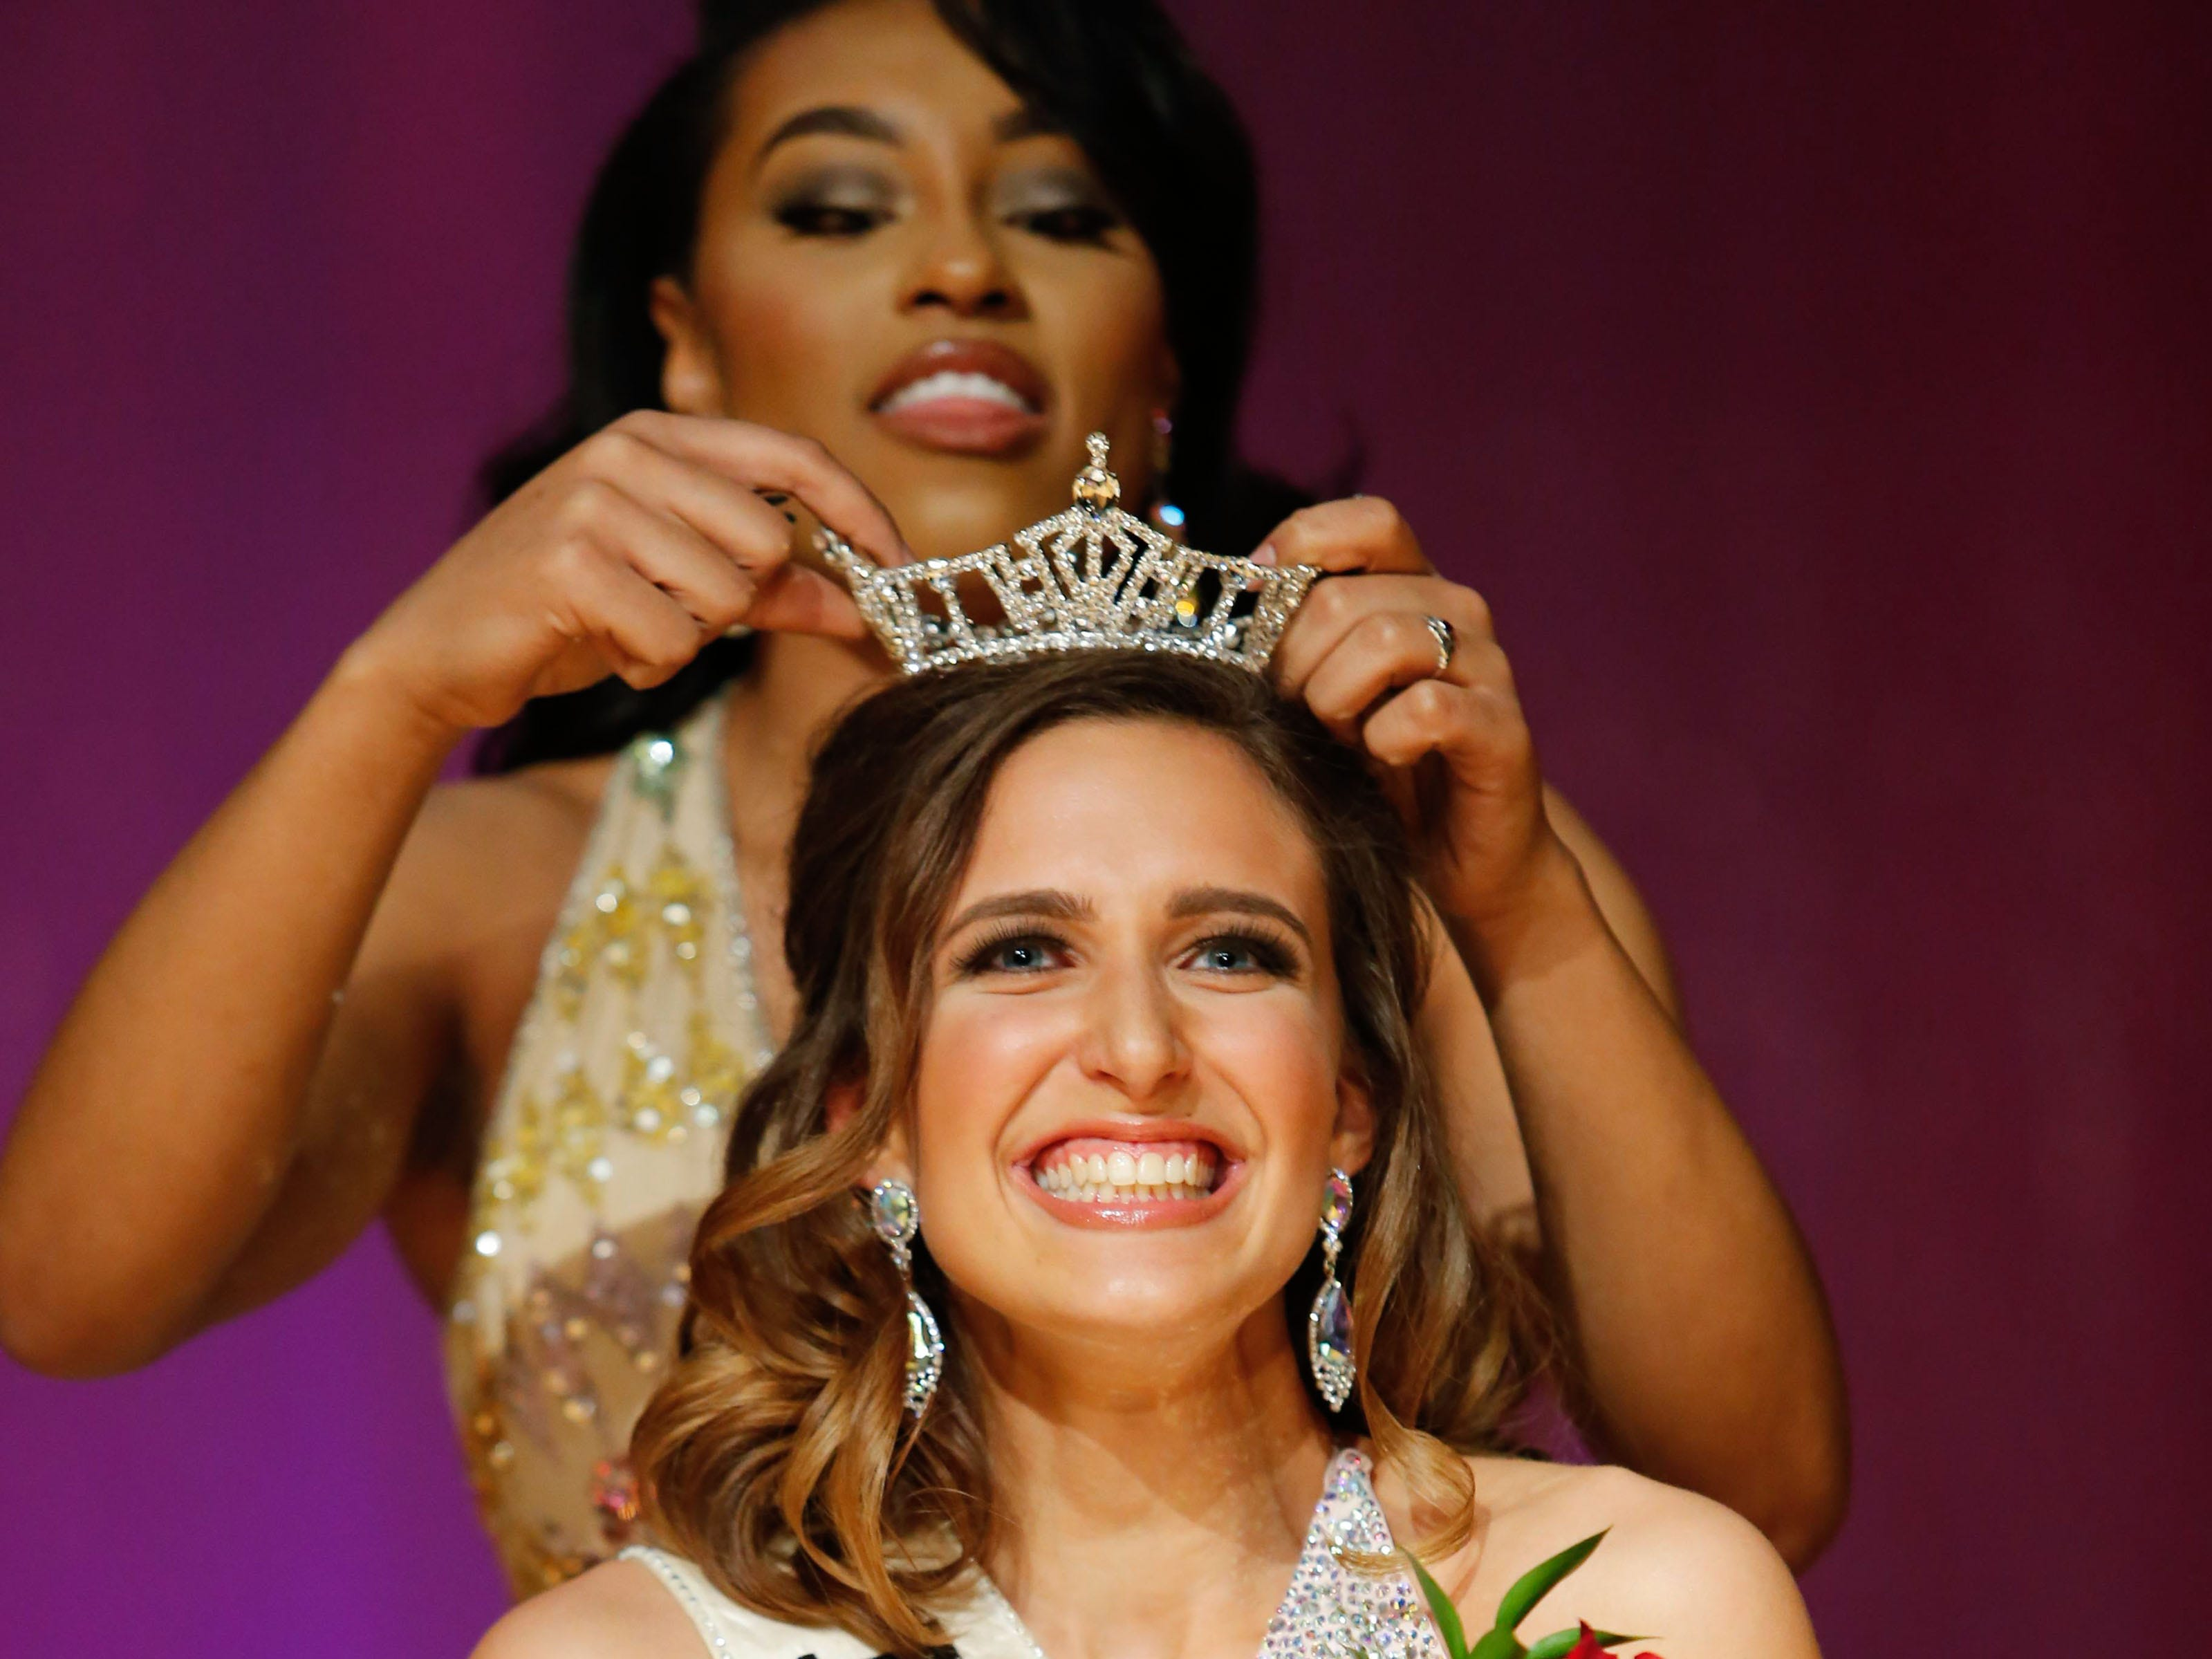 Sarah Bittner is crowned Miss St. Francis 2019 by Alexa Biami (Miss St. Francis 2018) during the 55th annual Miss St. Francis Scholarship Competition at St. Thomas More High School on Saturday, Feb. 2, 2019.